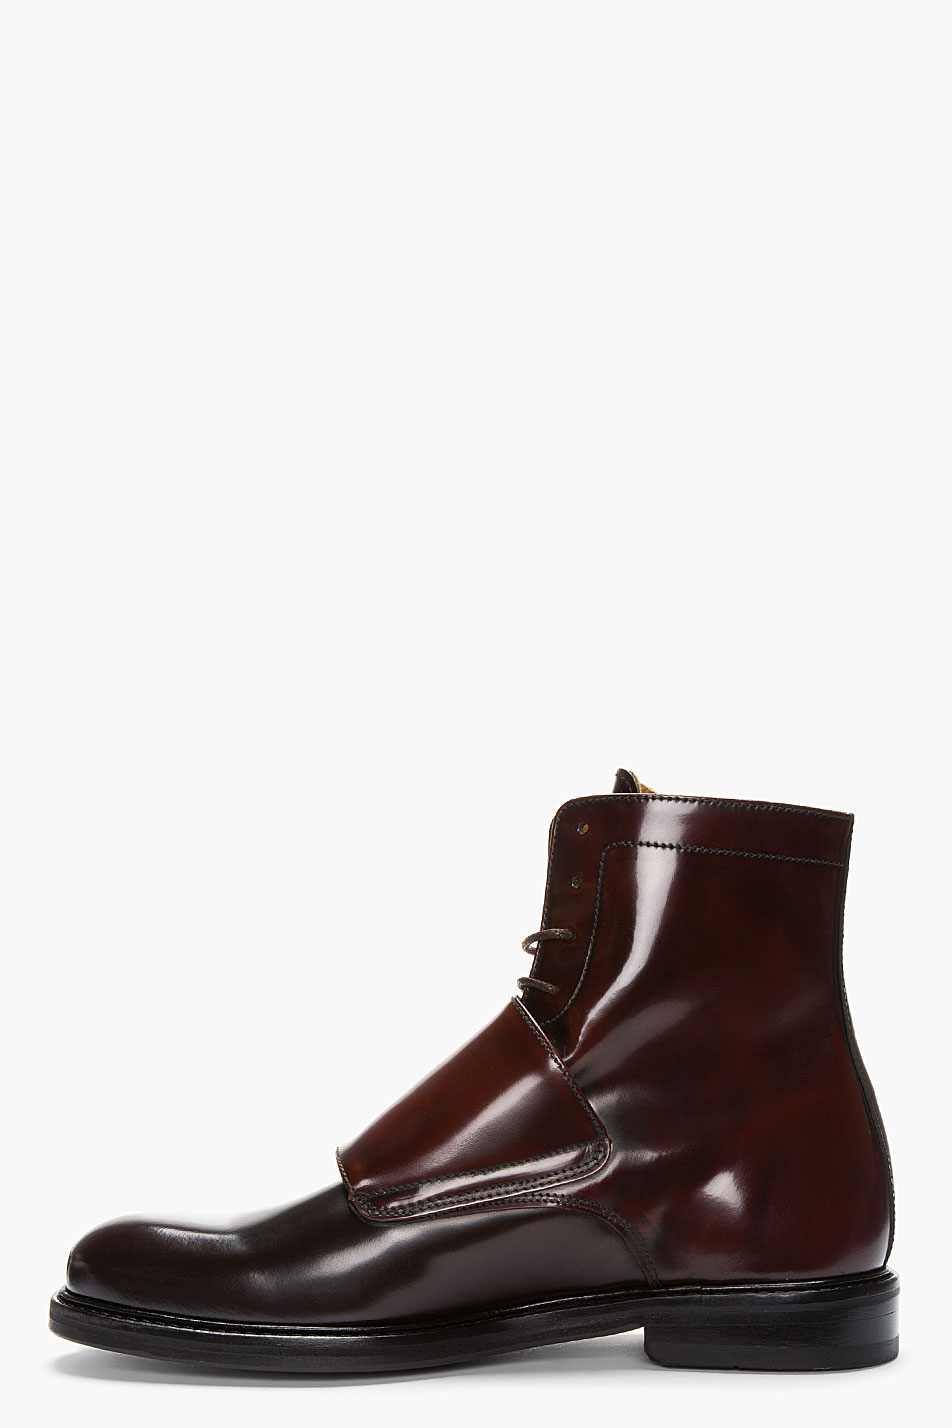 Lyst Carven Mahogany Two Tone Monk Strap Boots In Brown